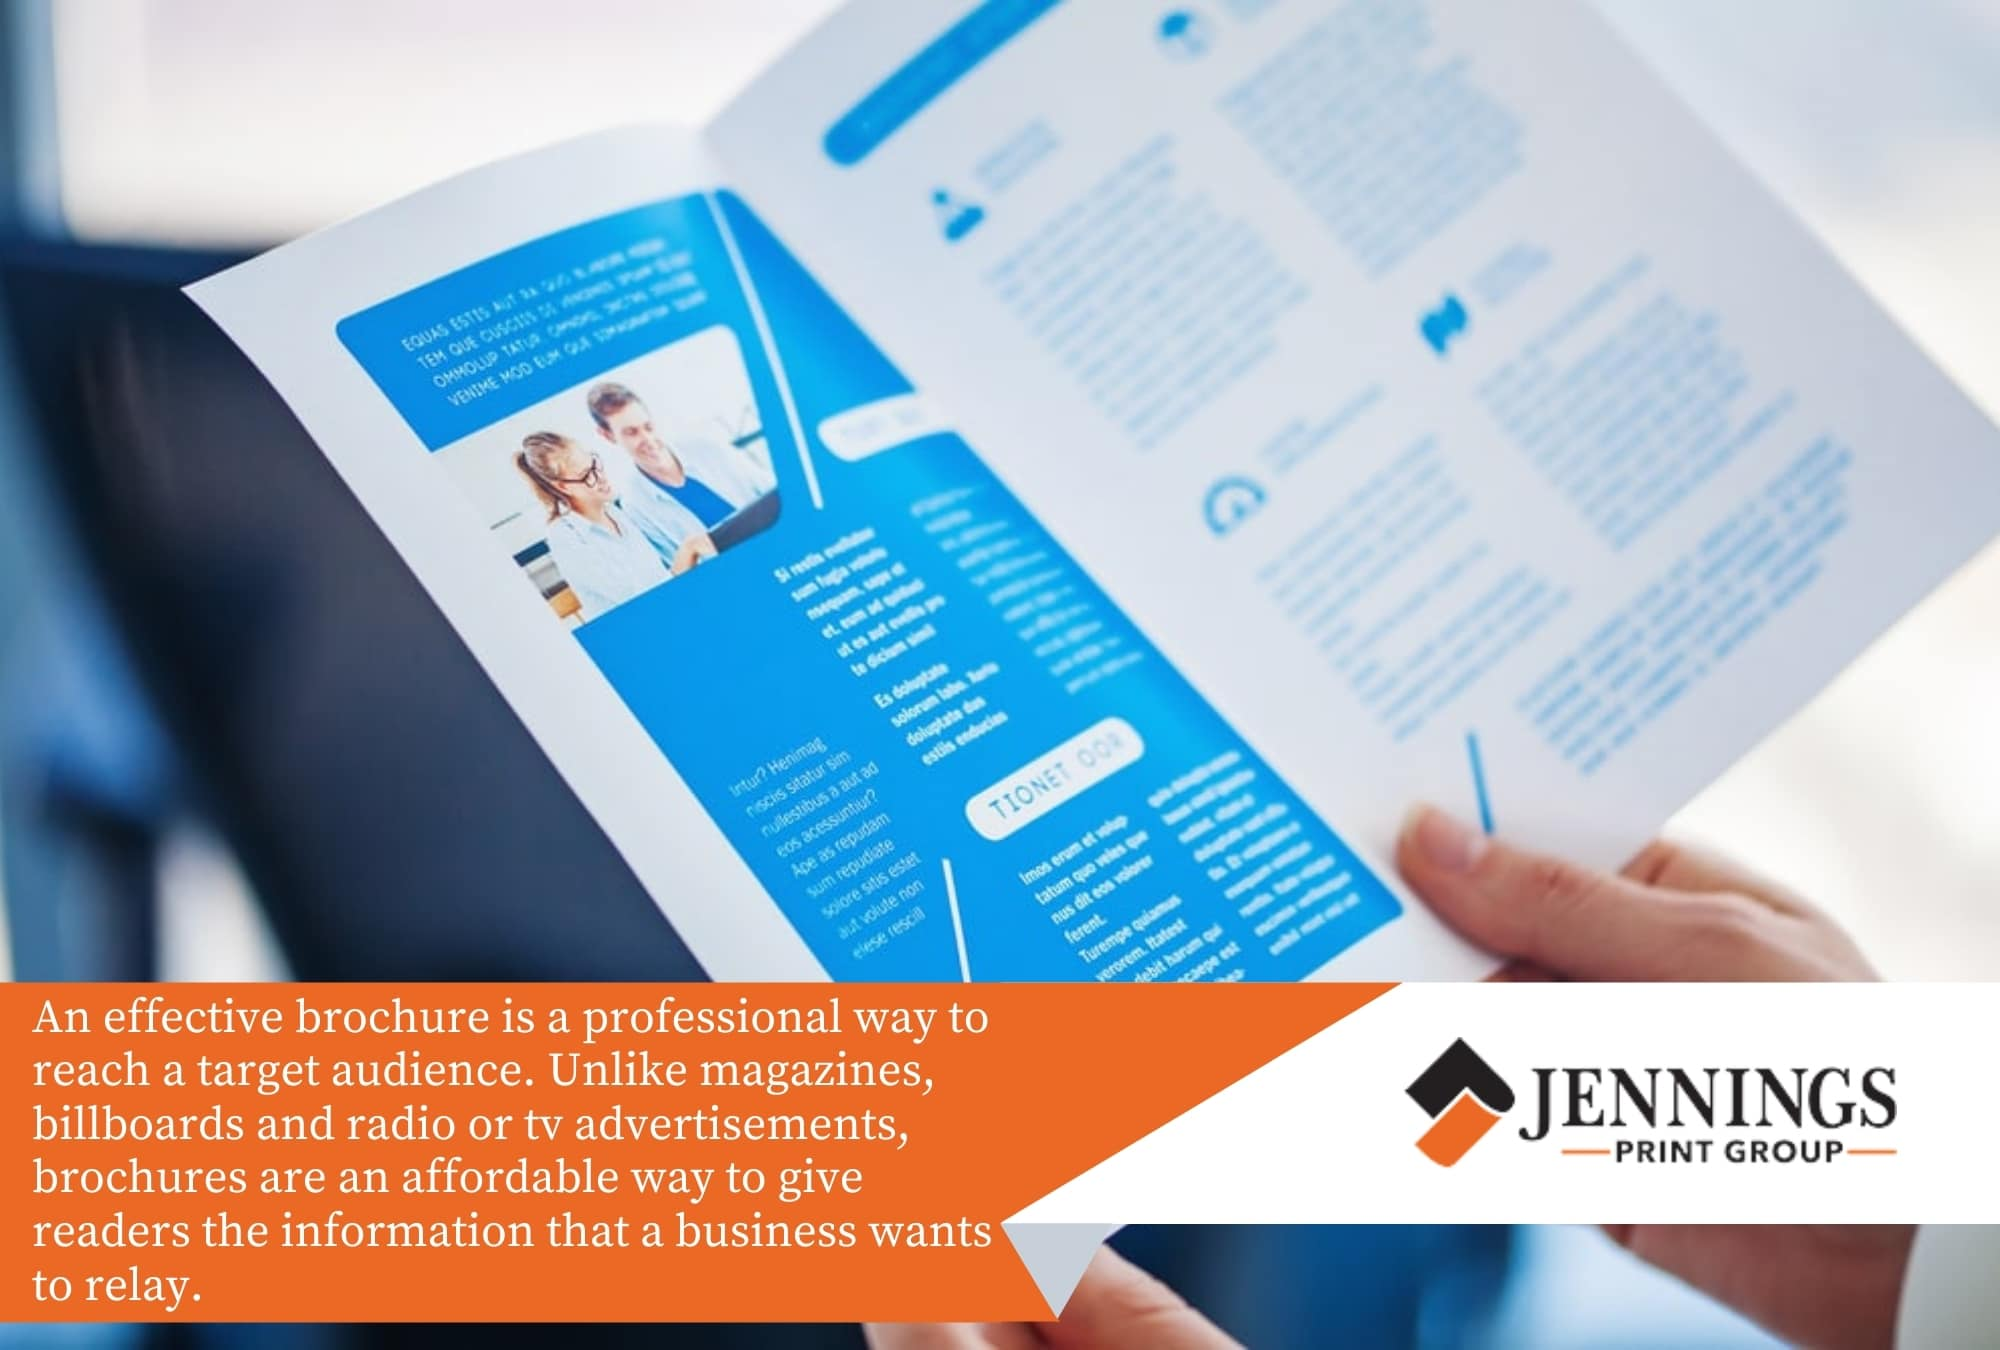 An effective brochure is a professional way